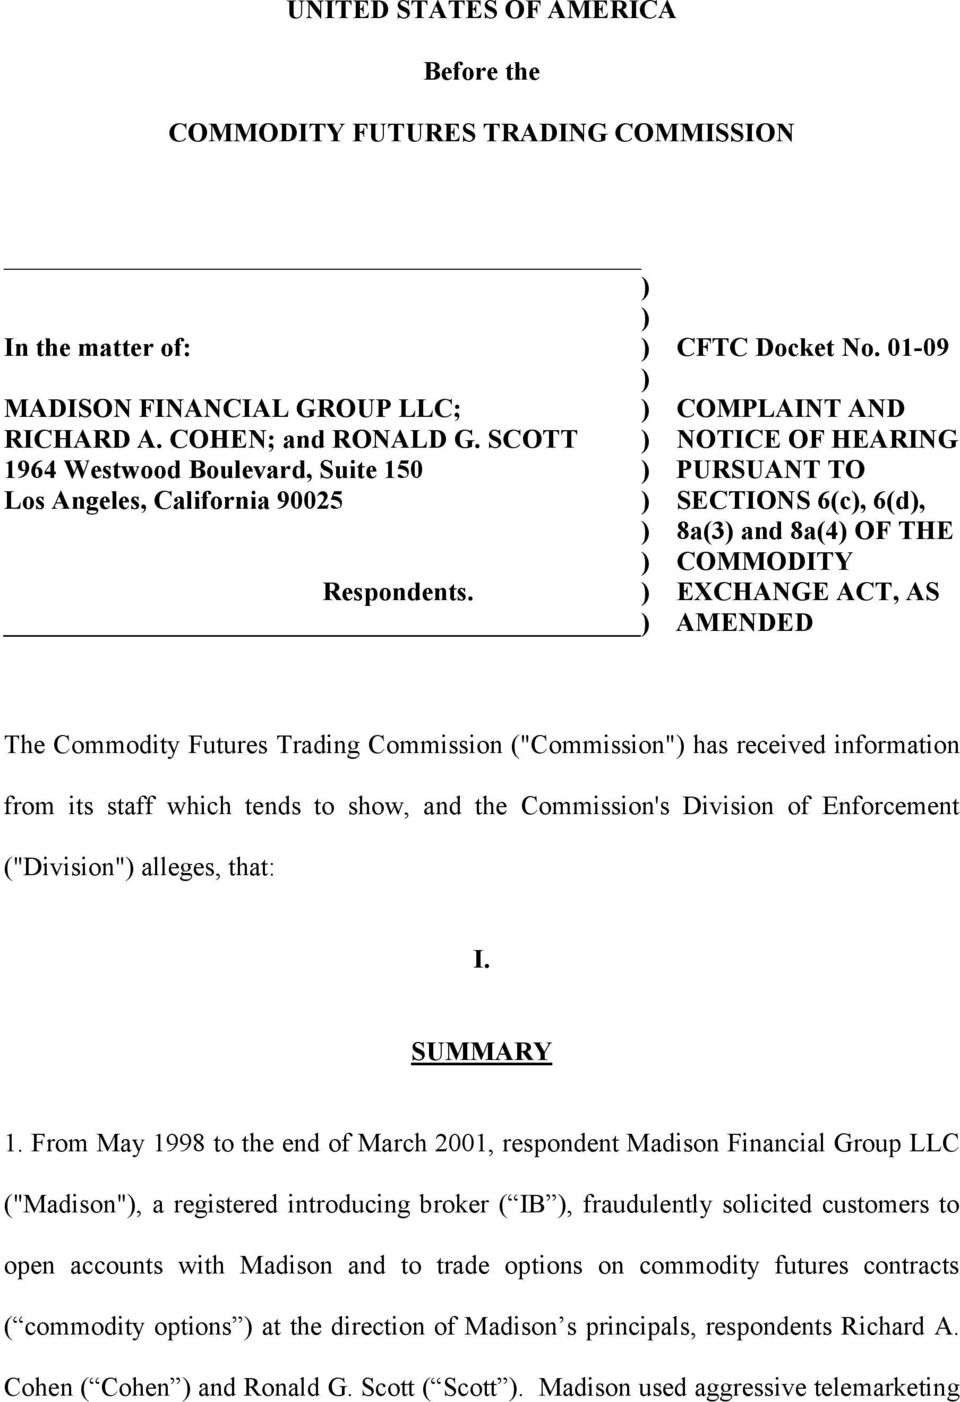 ") EXCHANGE ACT, AS ) AMENDED The Commodity Futures Trading Commission (""Commission"") has received information from its staff which tends to show, and the Commission's Division of Enforcement"